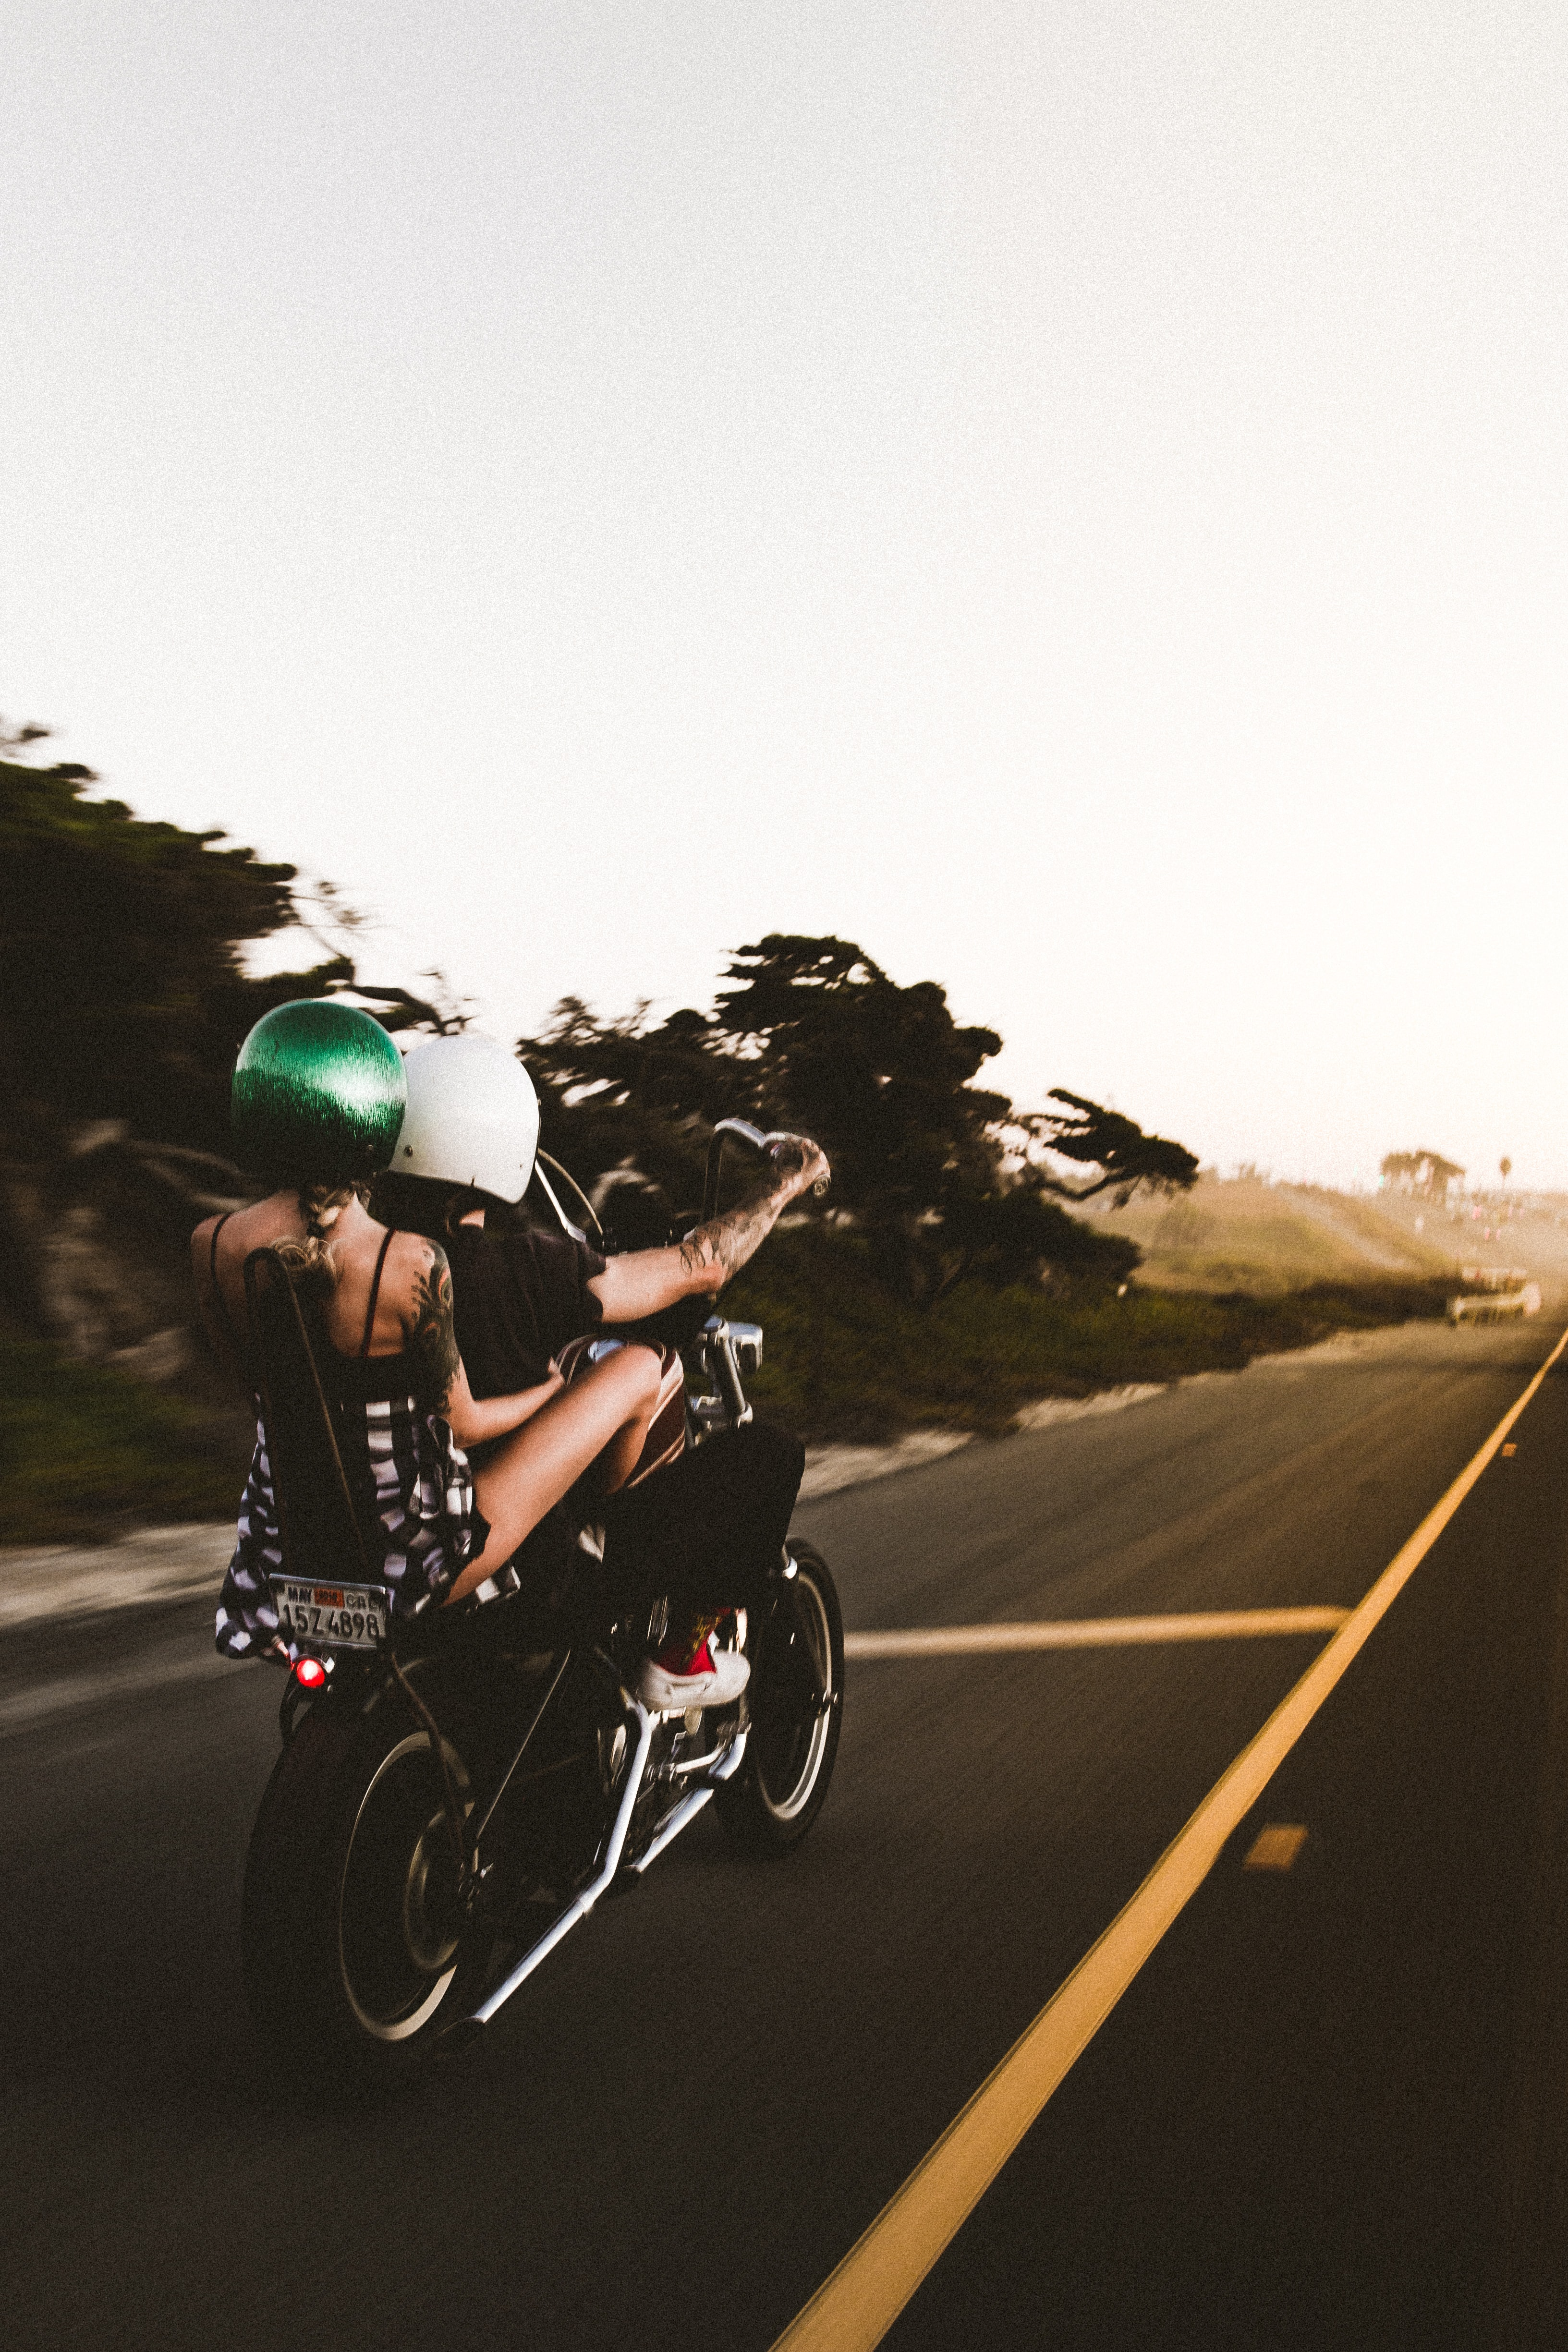 man driving on motorcycle with woman